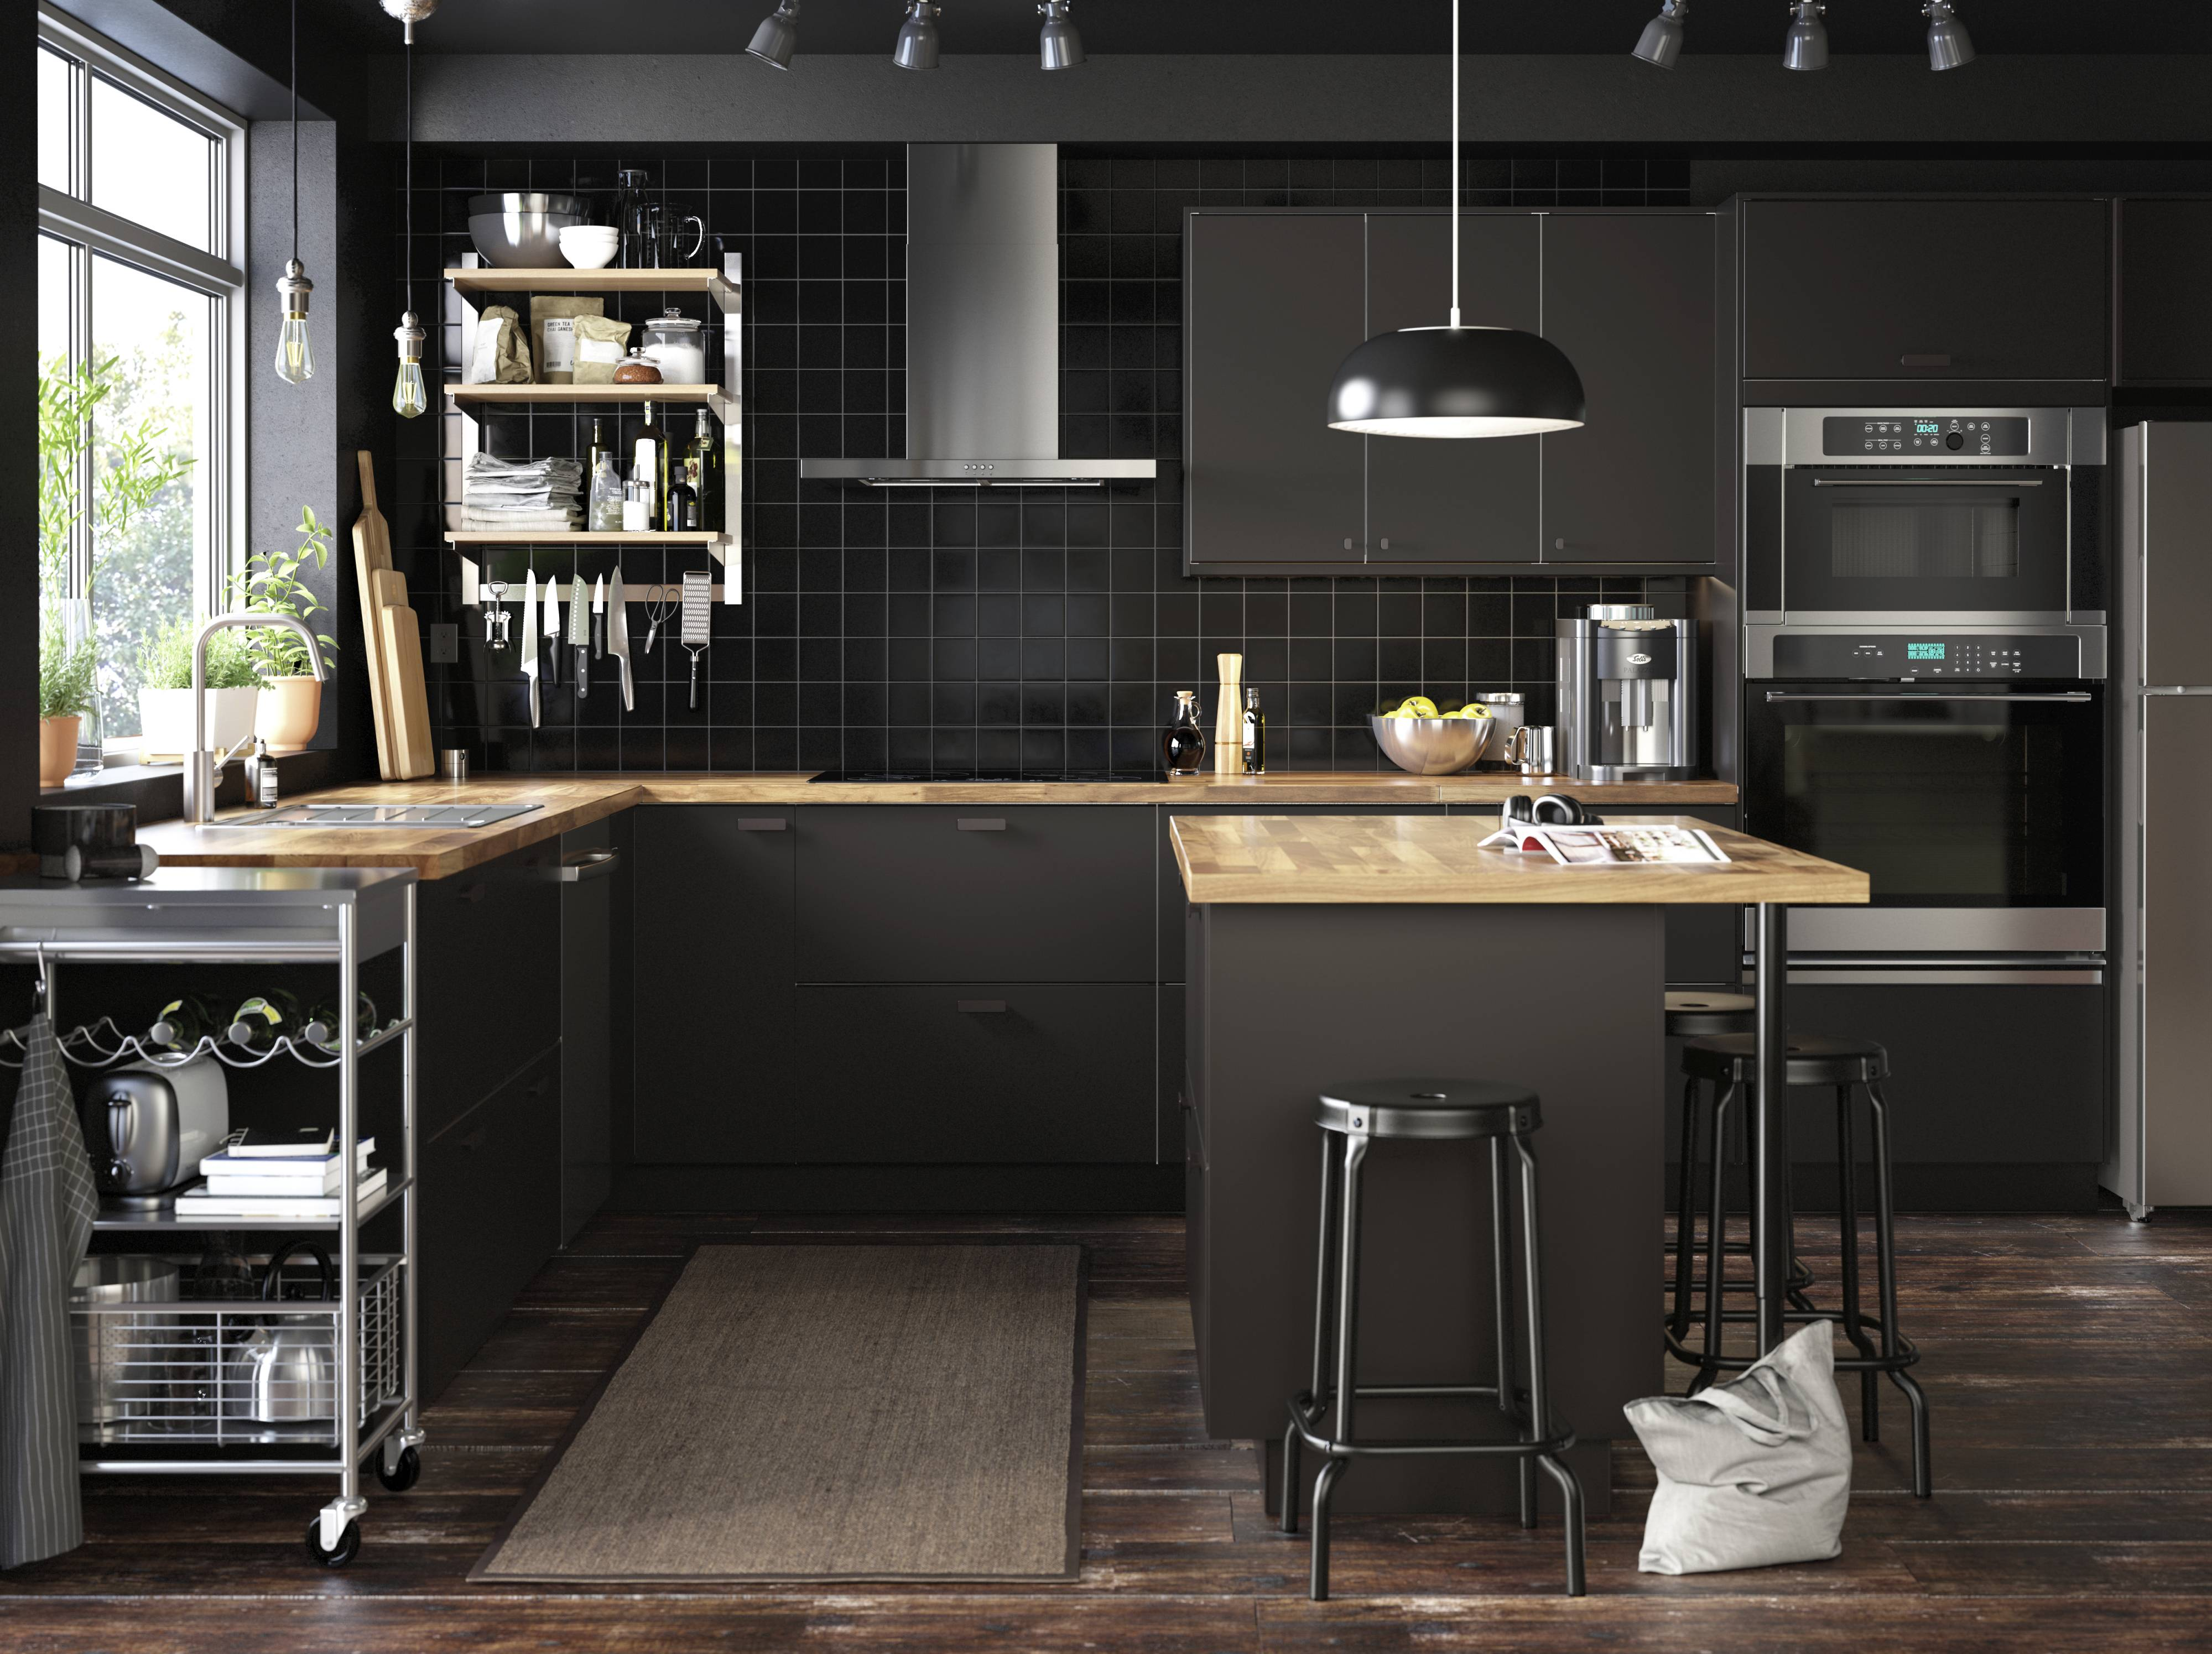 A planner hired through IKEA designed this kitchen. Be realistic about how long installing a new kitchen will take, designers say.